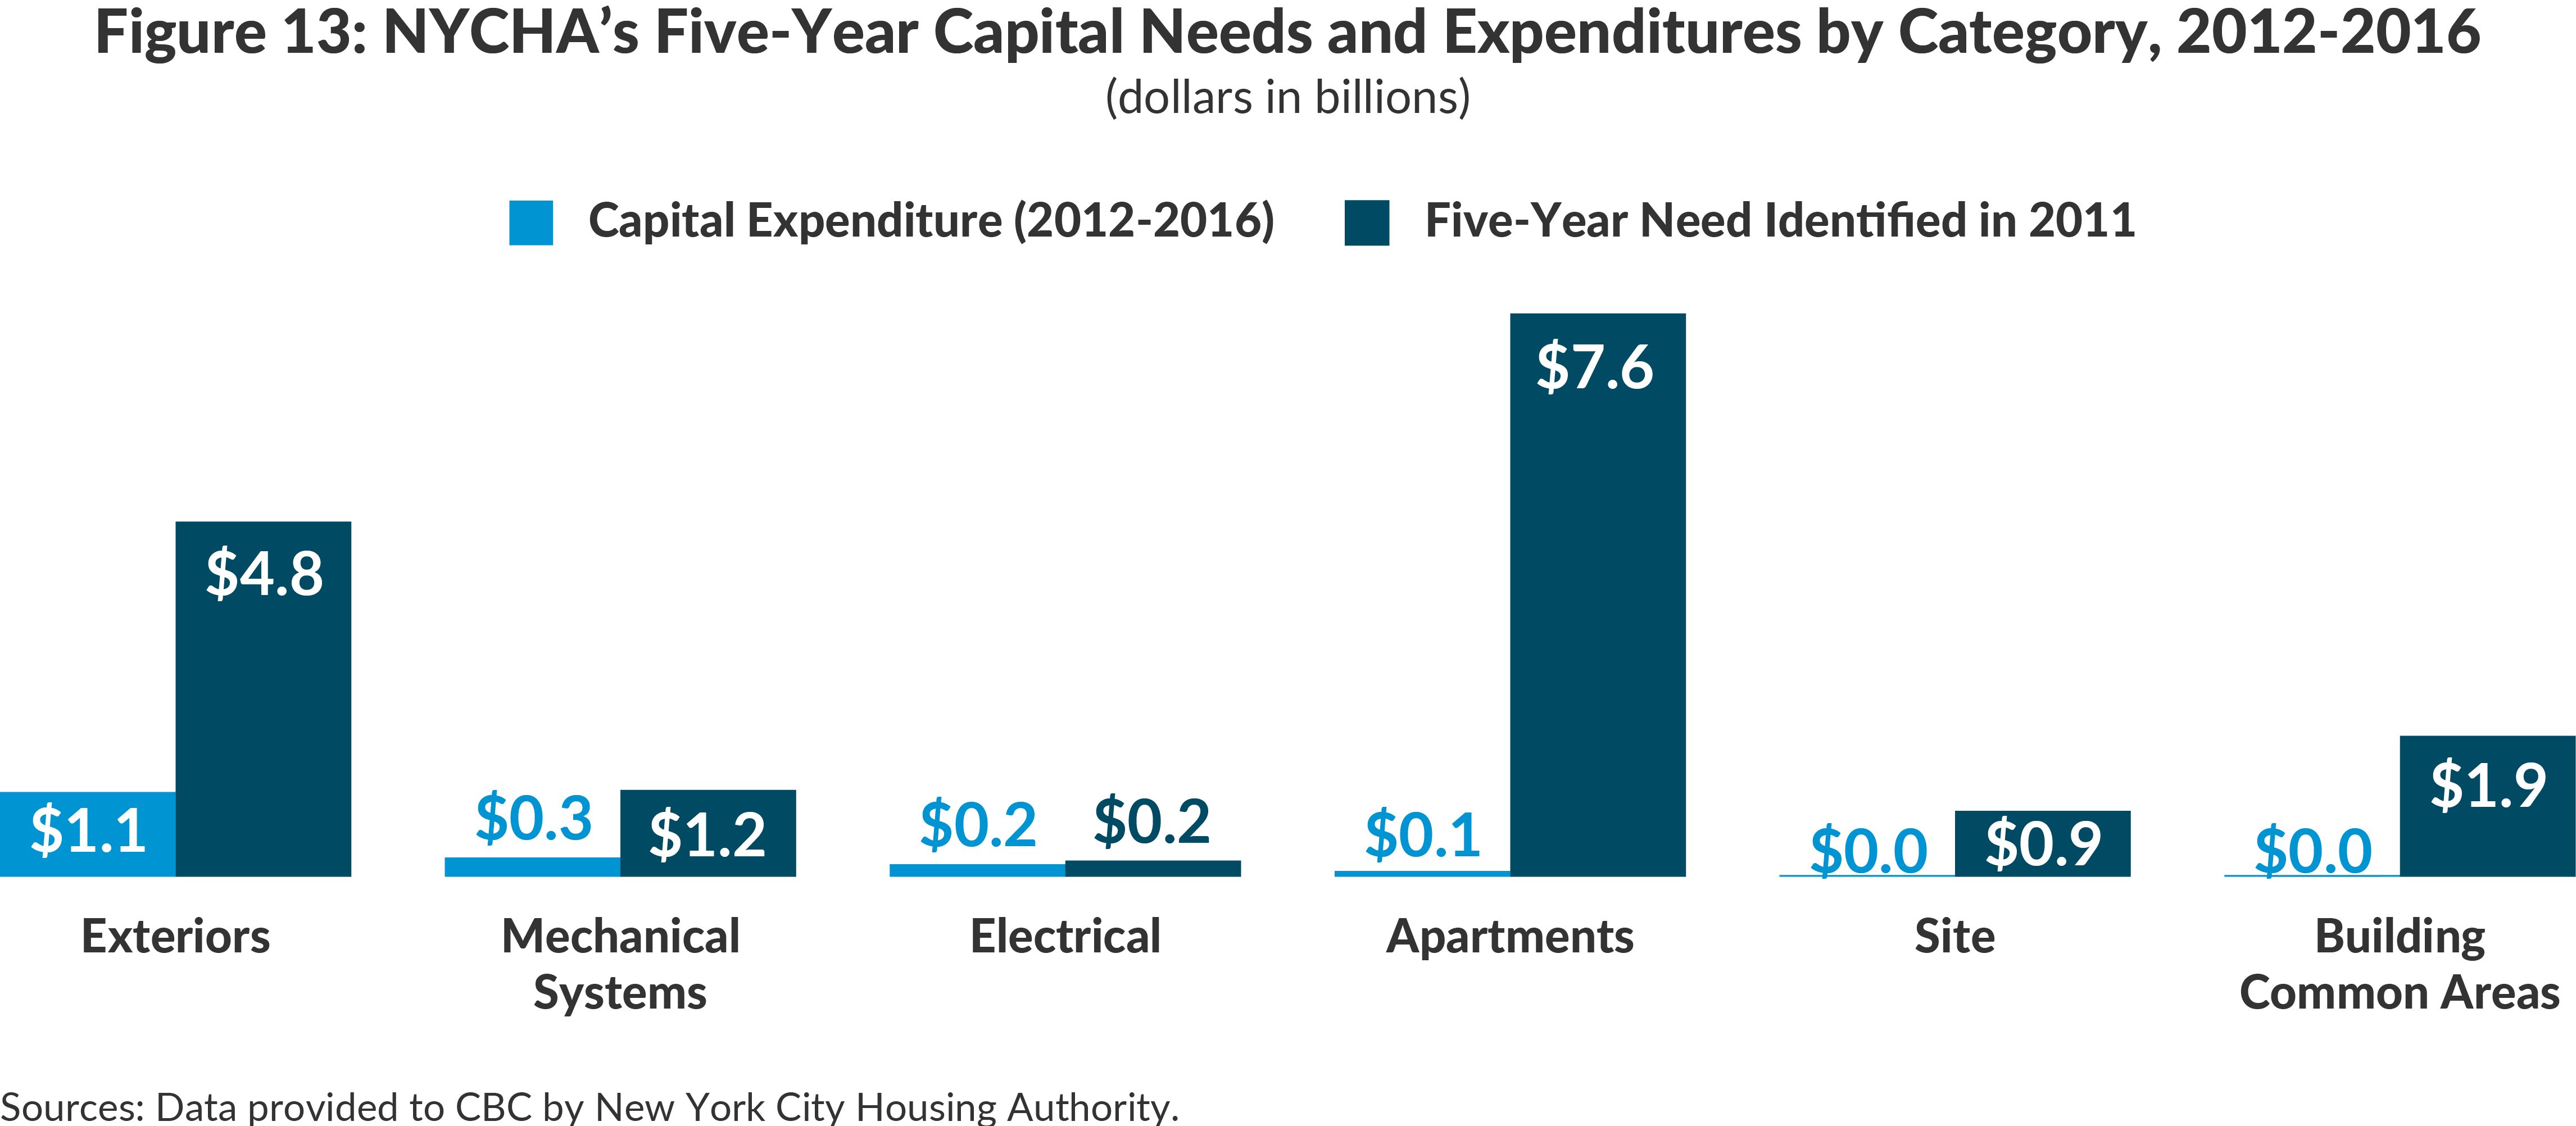 Figure 13: NYCHA's Five-Year Capital Needs and Expenditures by Category, 2012-2016